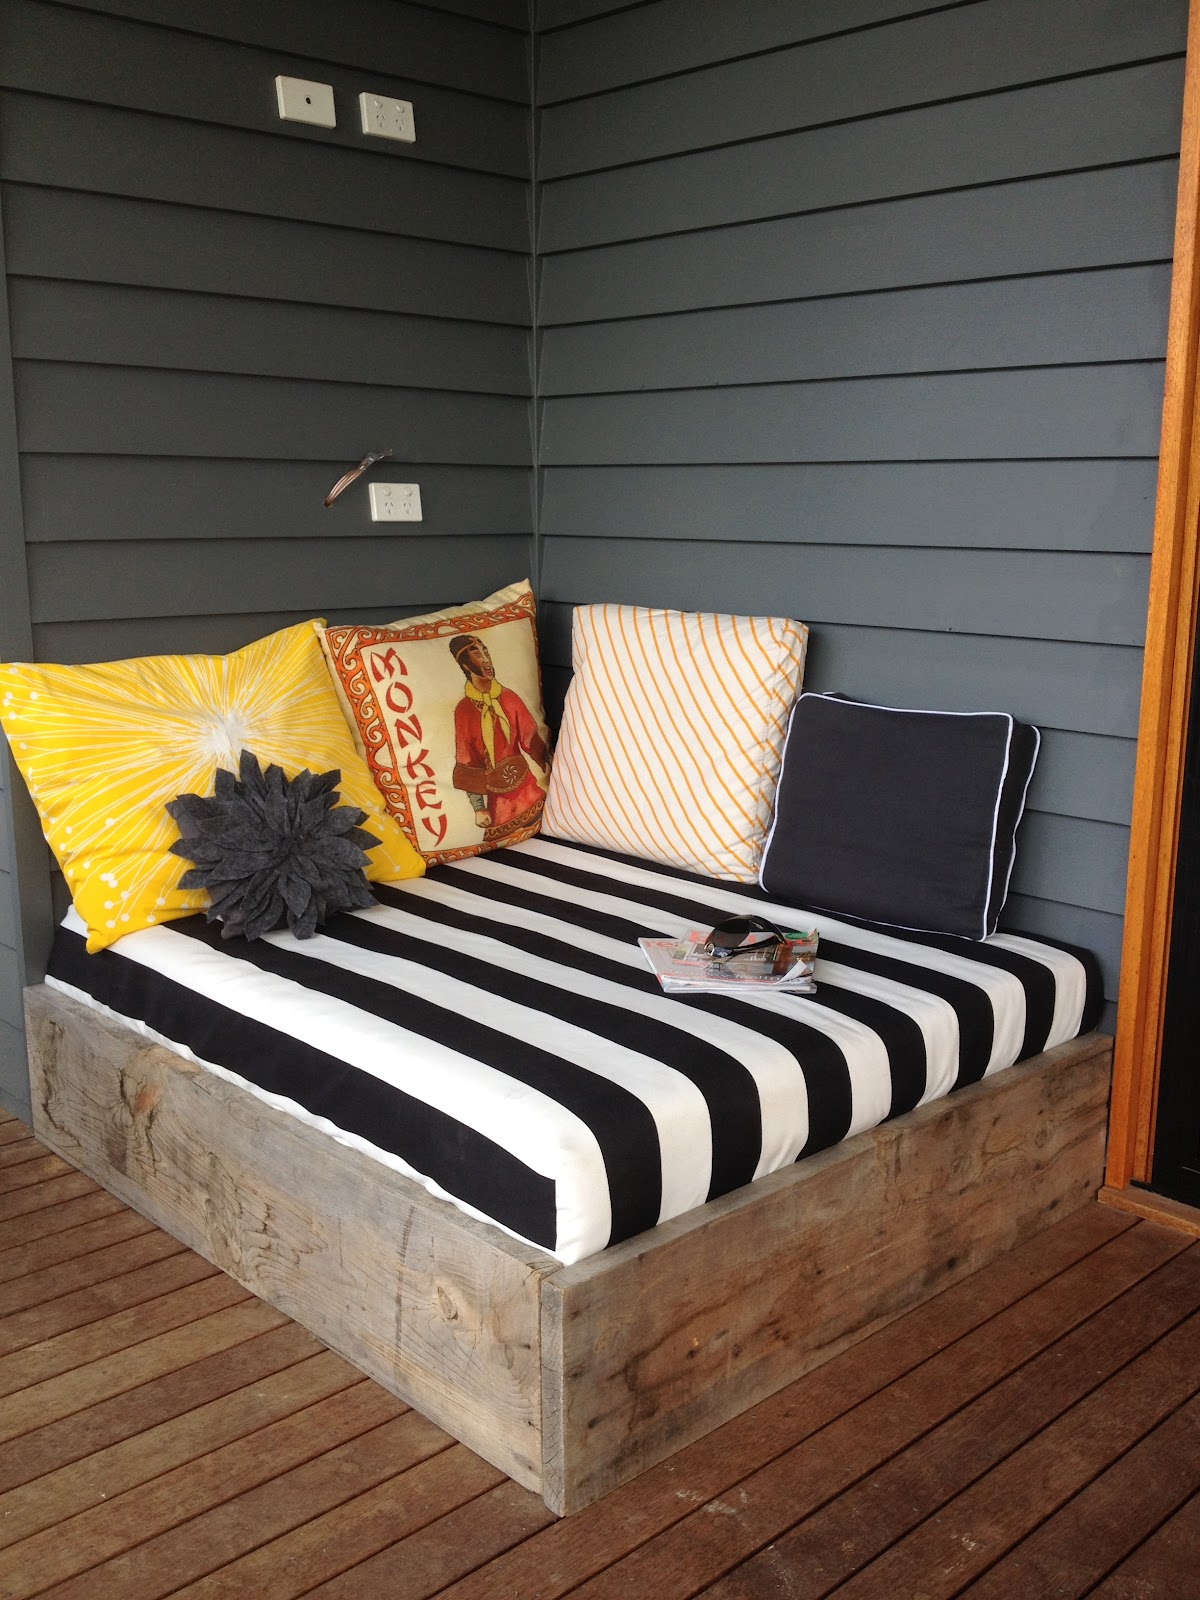 Free Outdoor Furniture Plans Help You Create Your Own ... on Belham Living Lilianna Outdoor Daybed id=29960